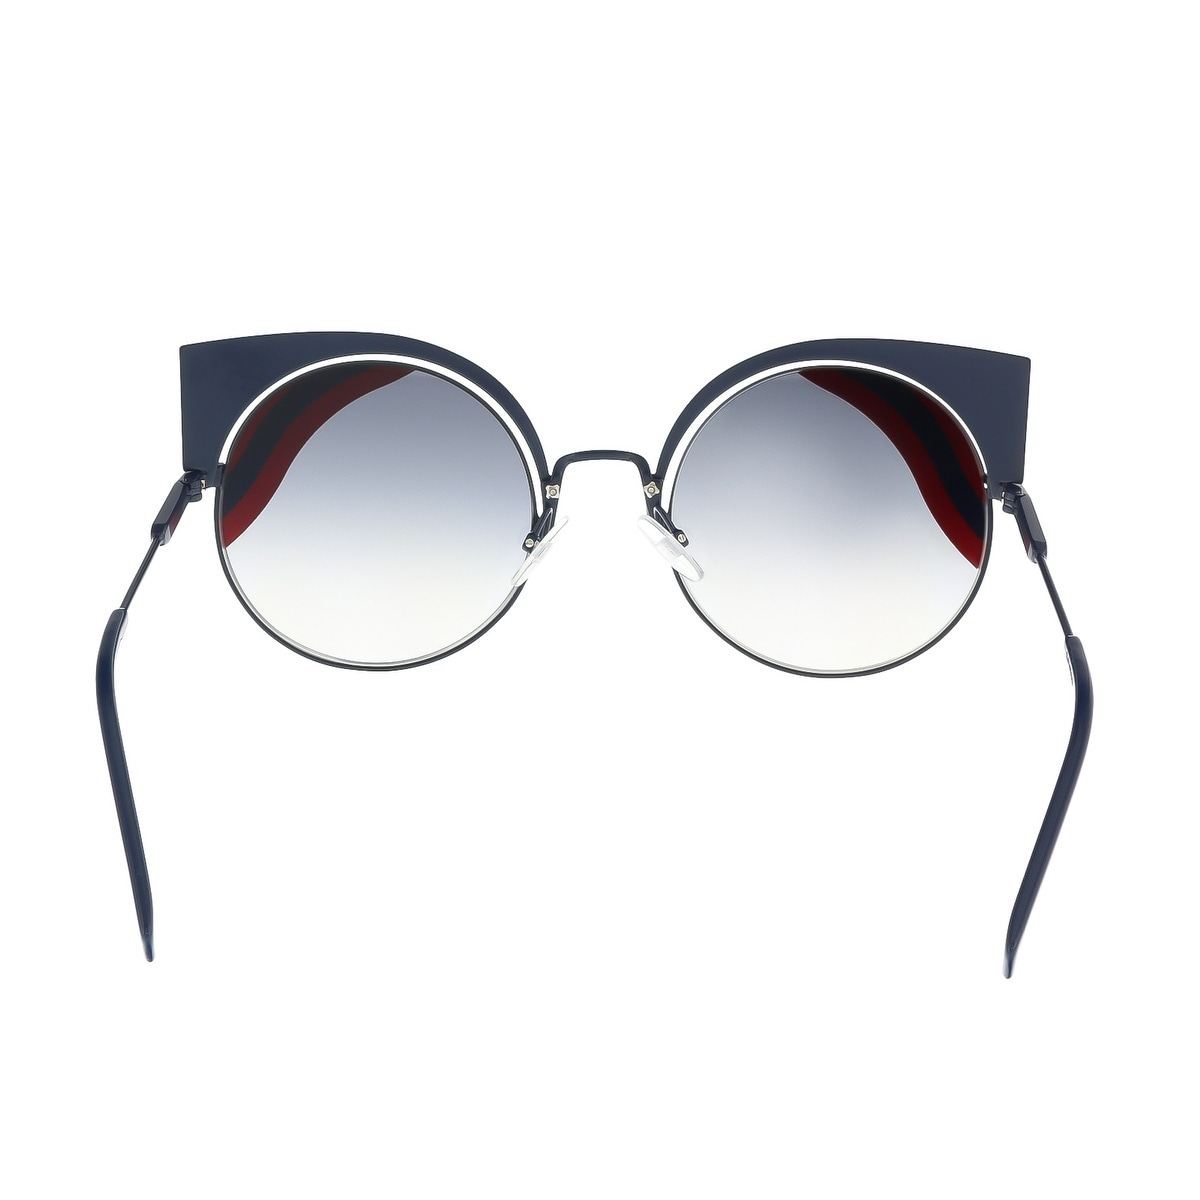 65eb2ef164a4 Shop Fendi FF 0215 S 00M1 Hypnoshine Dark Blue Red Cat Eye Sunglasses -  Free Shipping Today - Overstock - 16790930